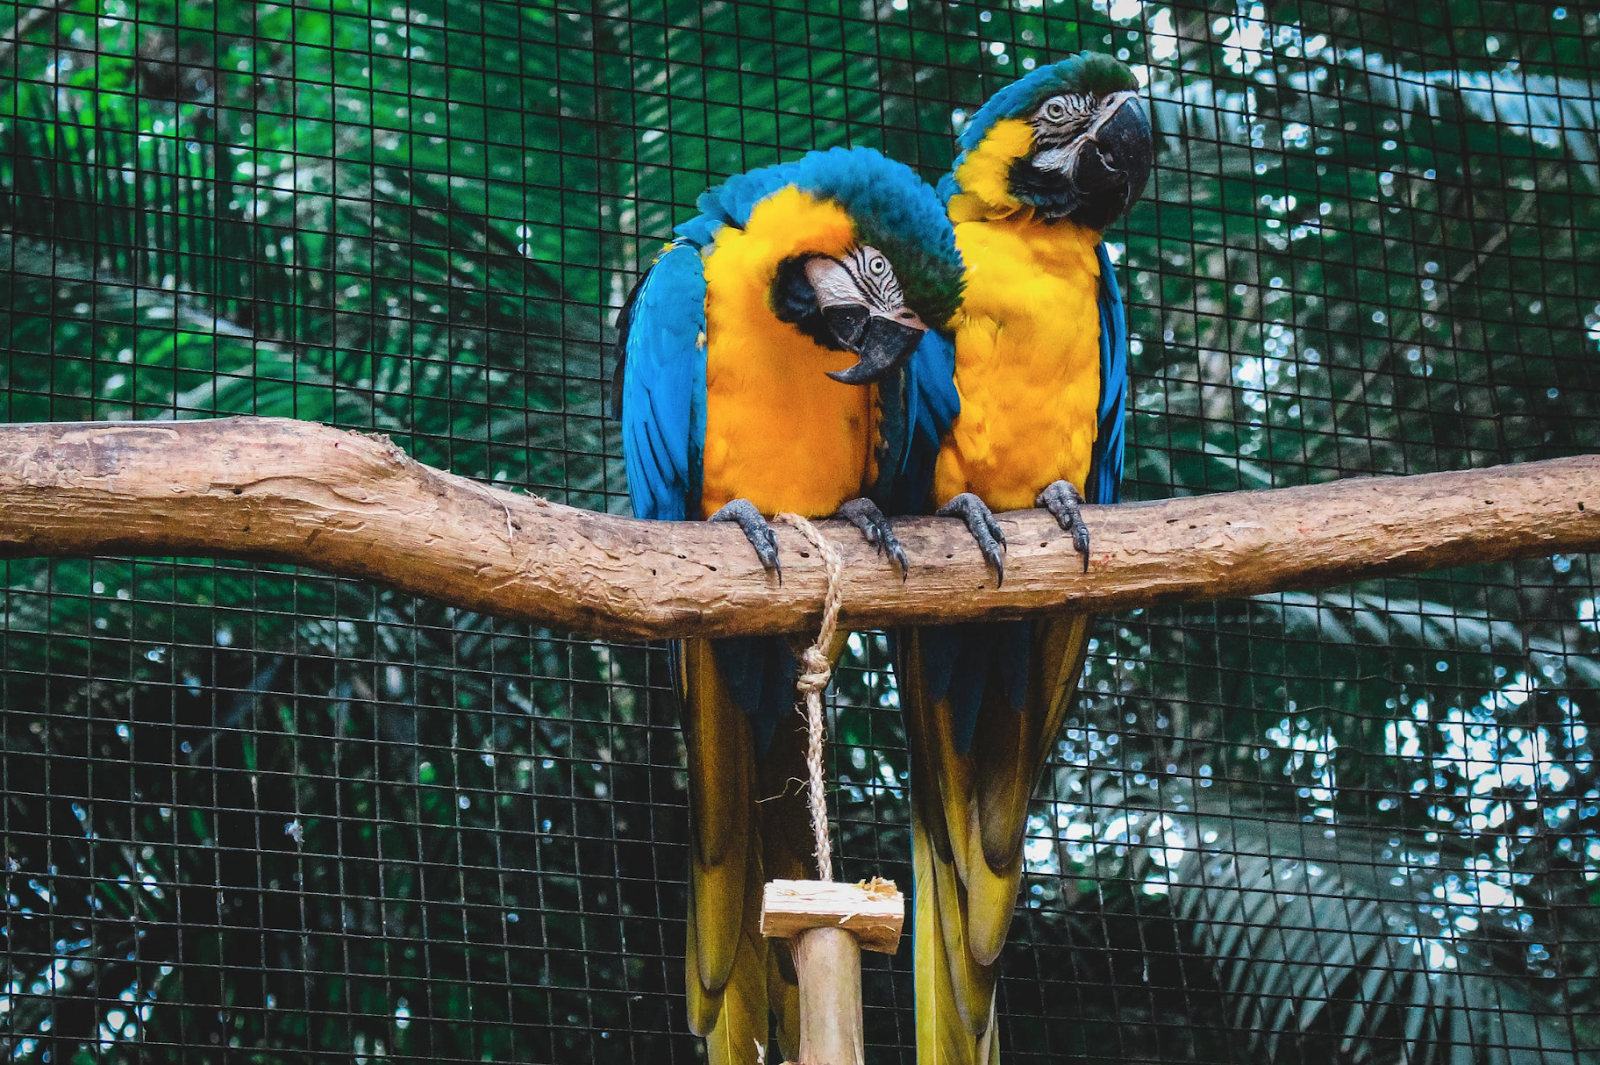 Two large birds with yellow stomachs, blue wings, and large beaks perch on a branch in a netted in enclosure.